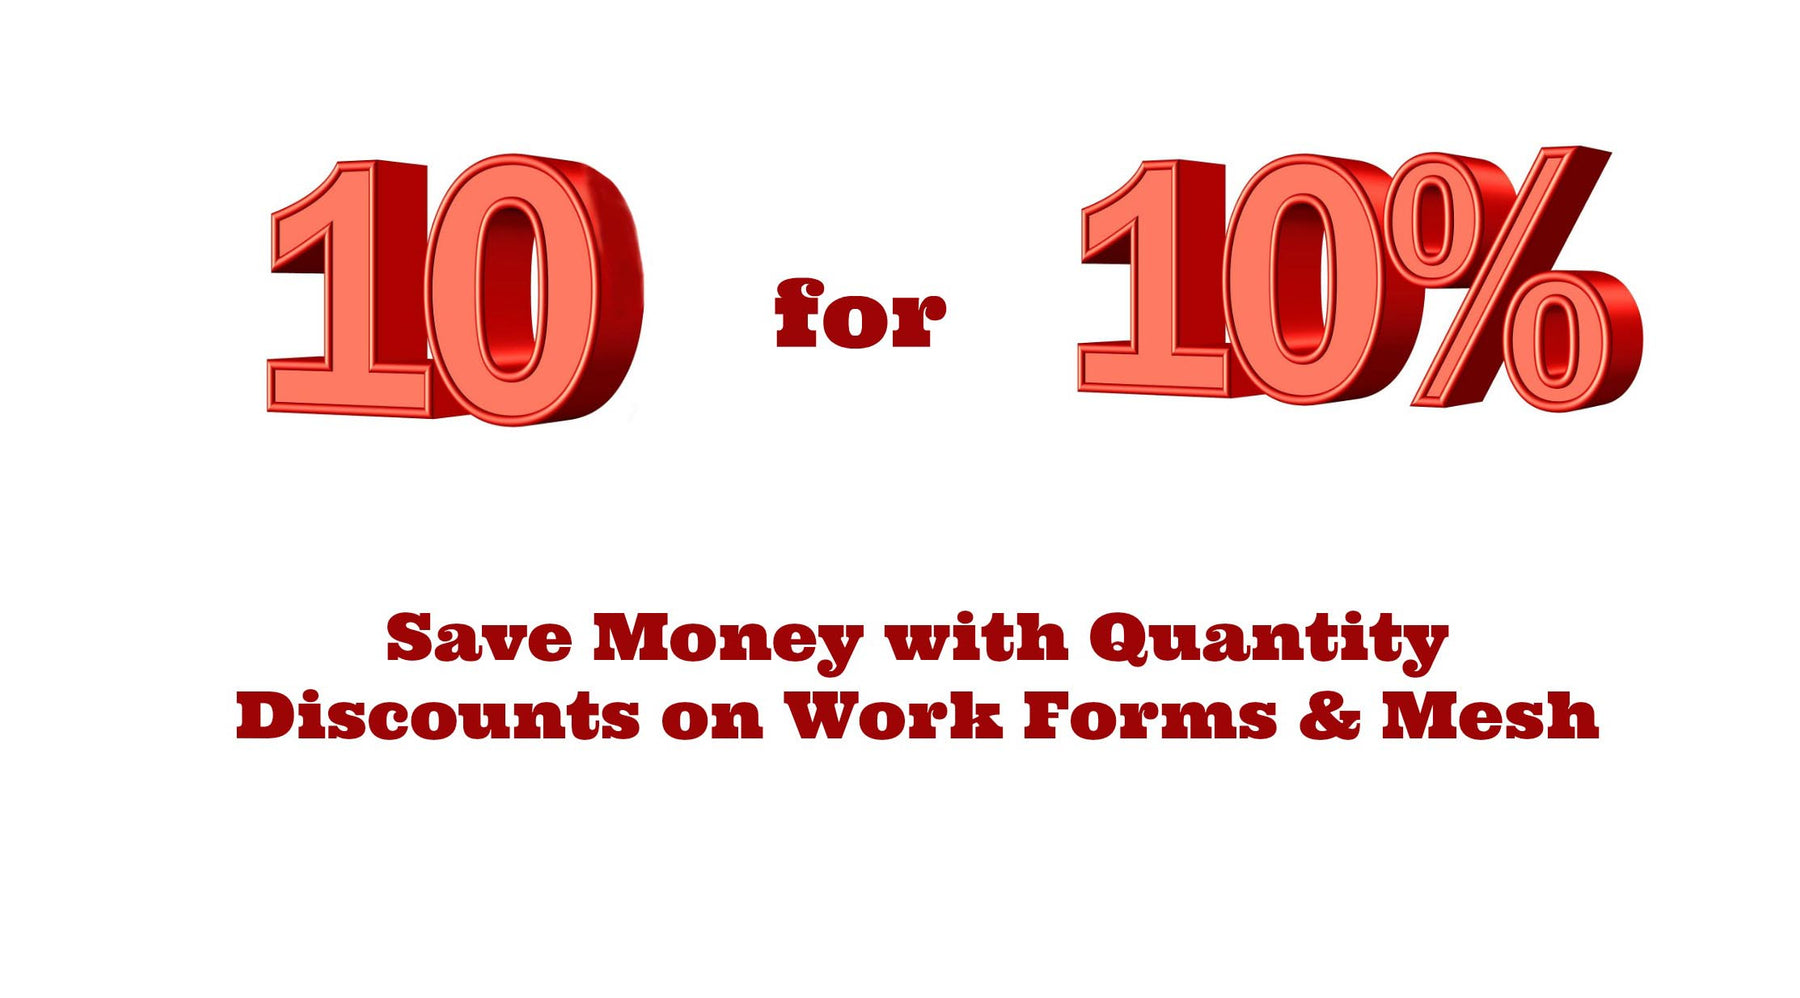 Now Available - Quantity Discounts on Mesh & Work Forms!